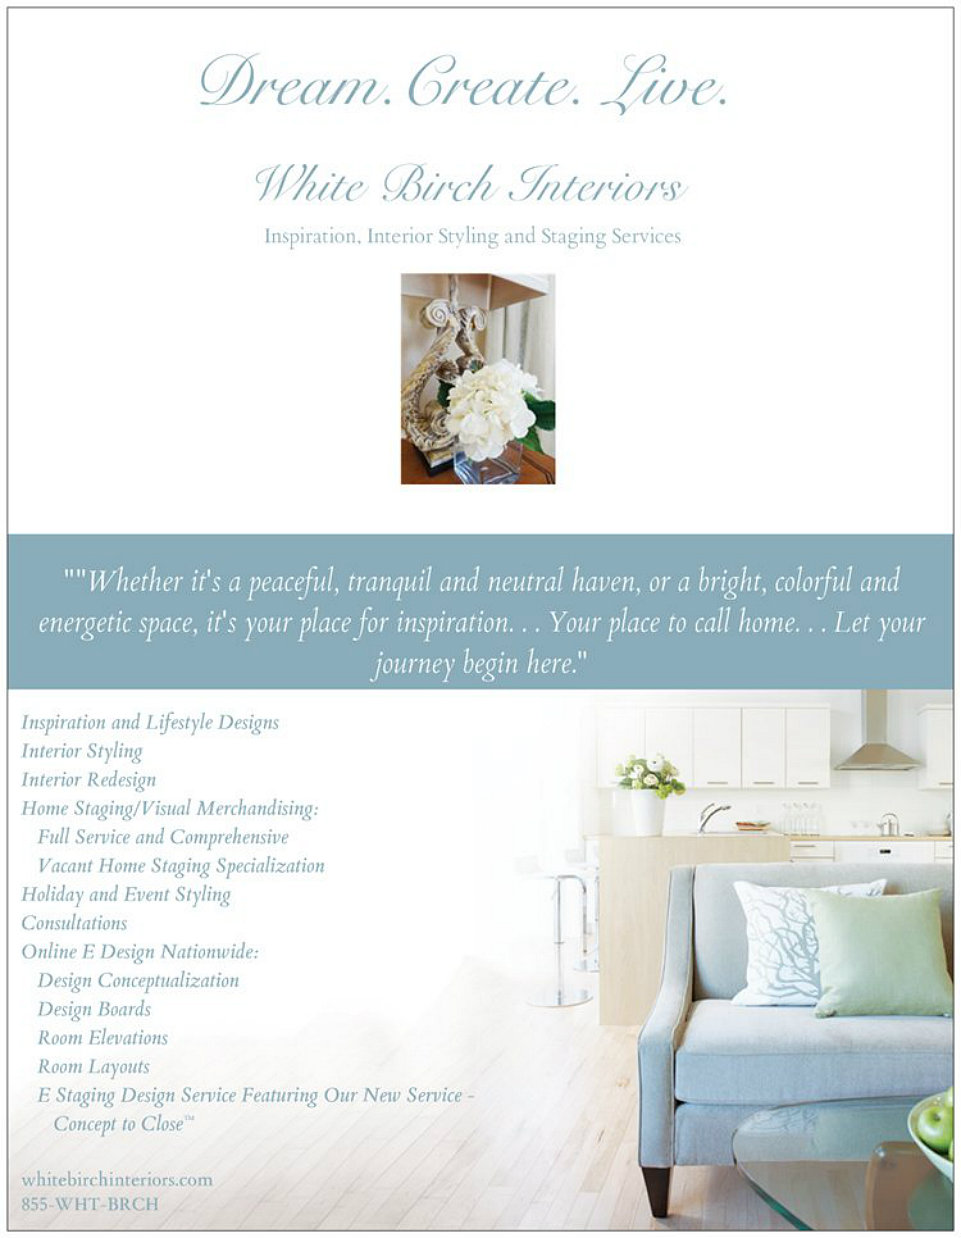 White Birch Interiors™ Premiers It's Online E Design Service ... on home inspection flyer, home cleaning flyer, home security flyer, home buying flyer, home maintenance flyer, organizing your home flyer, home listing flyer, home insurance flyer, home repairs flyer,